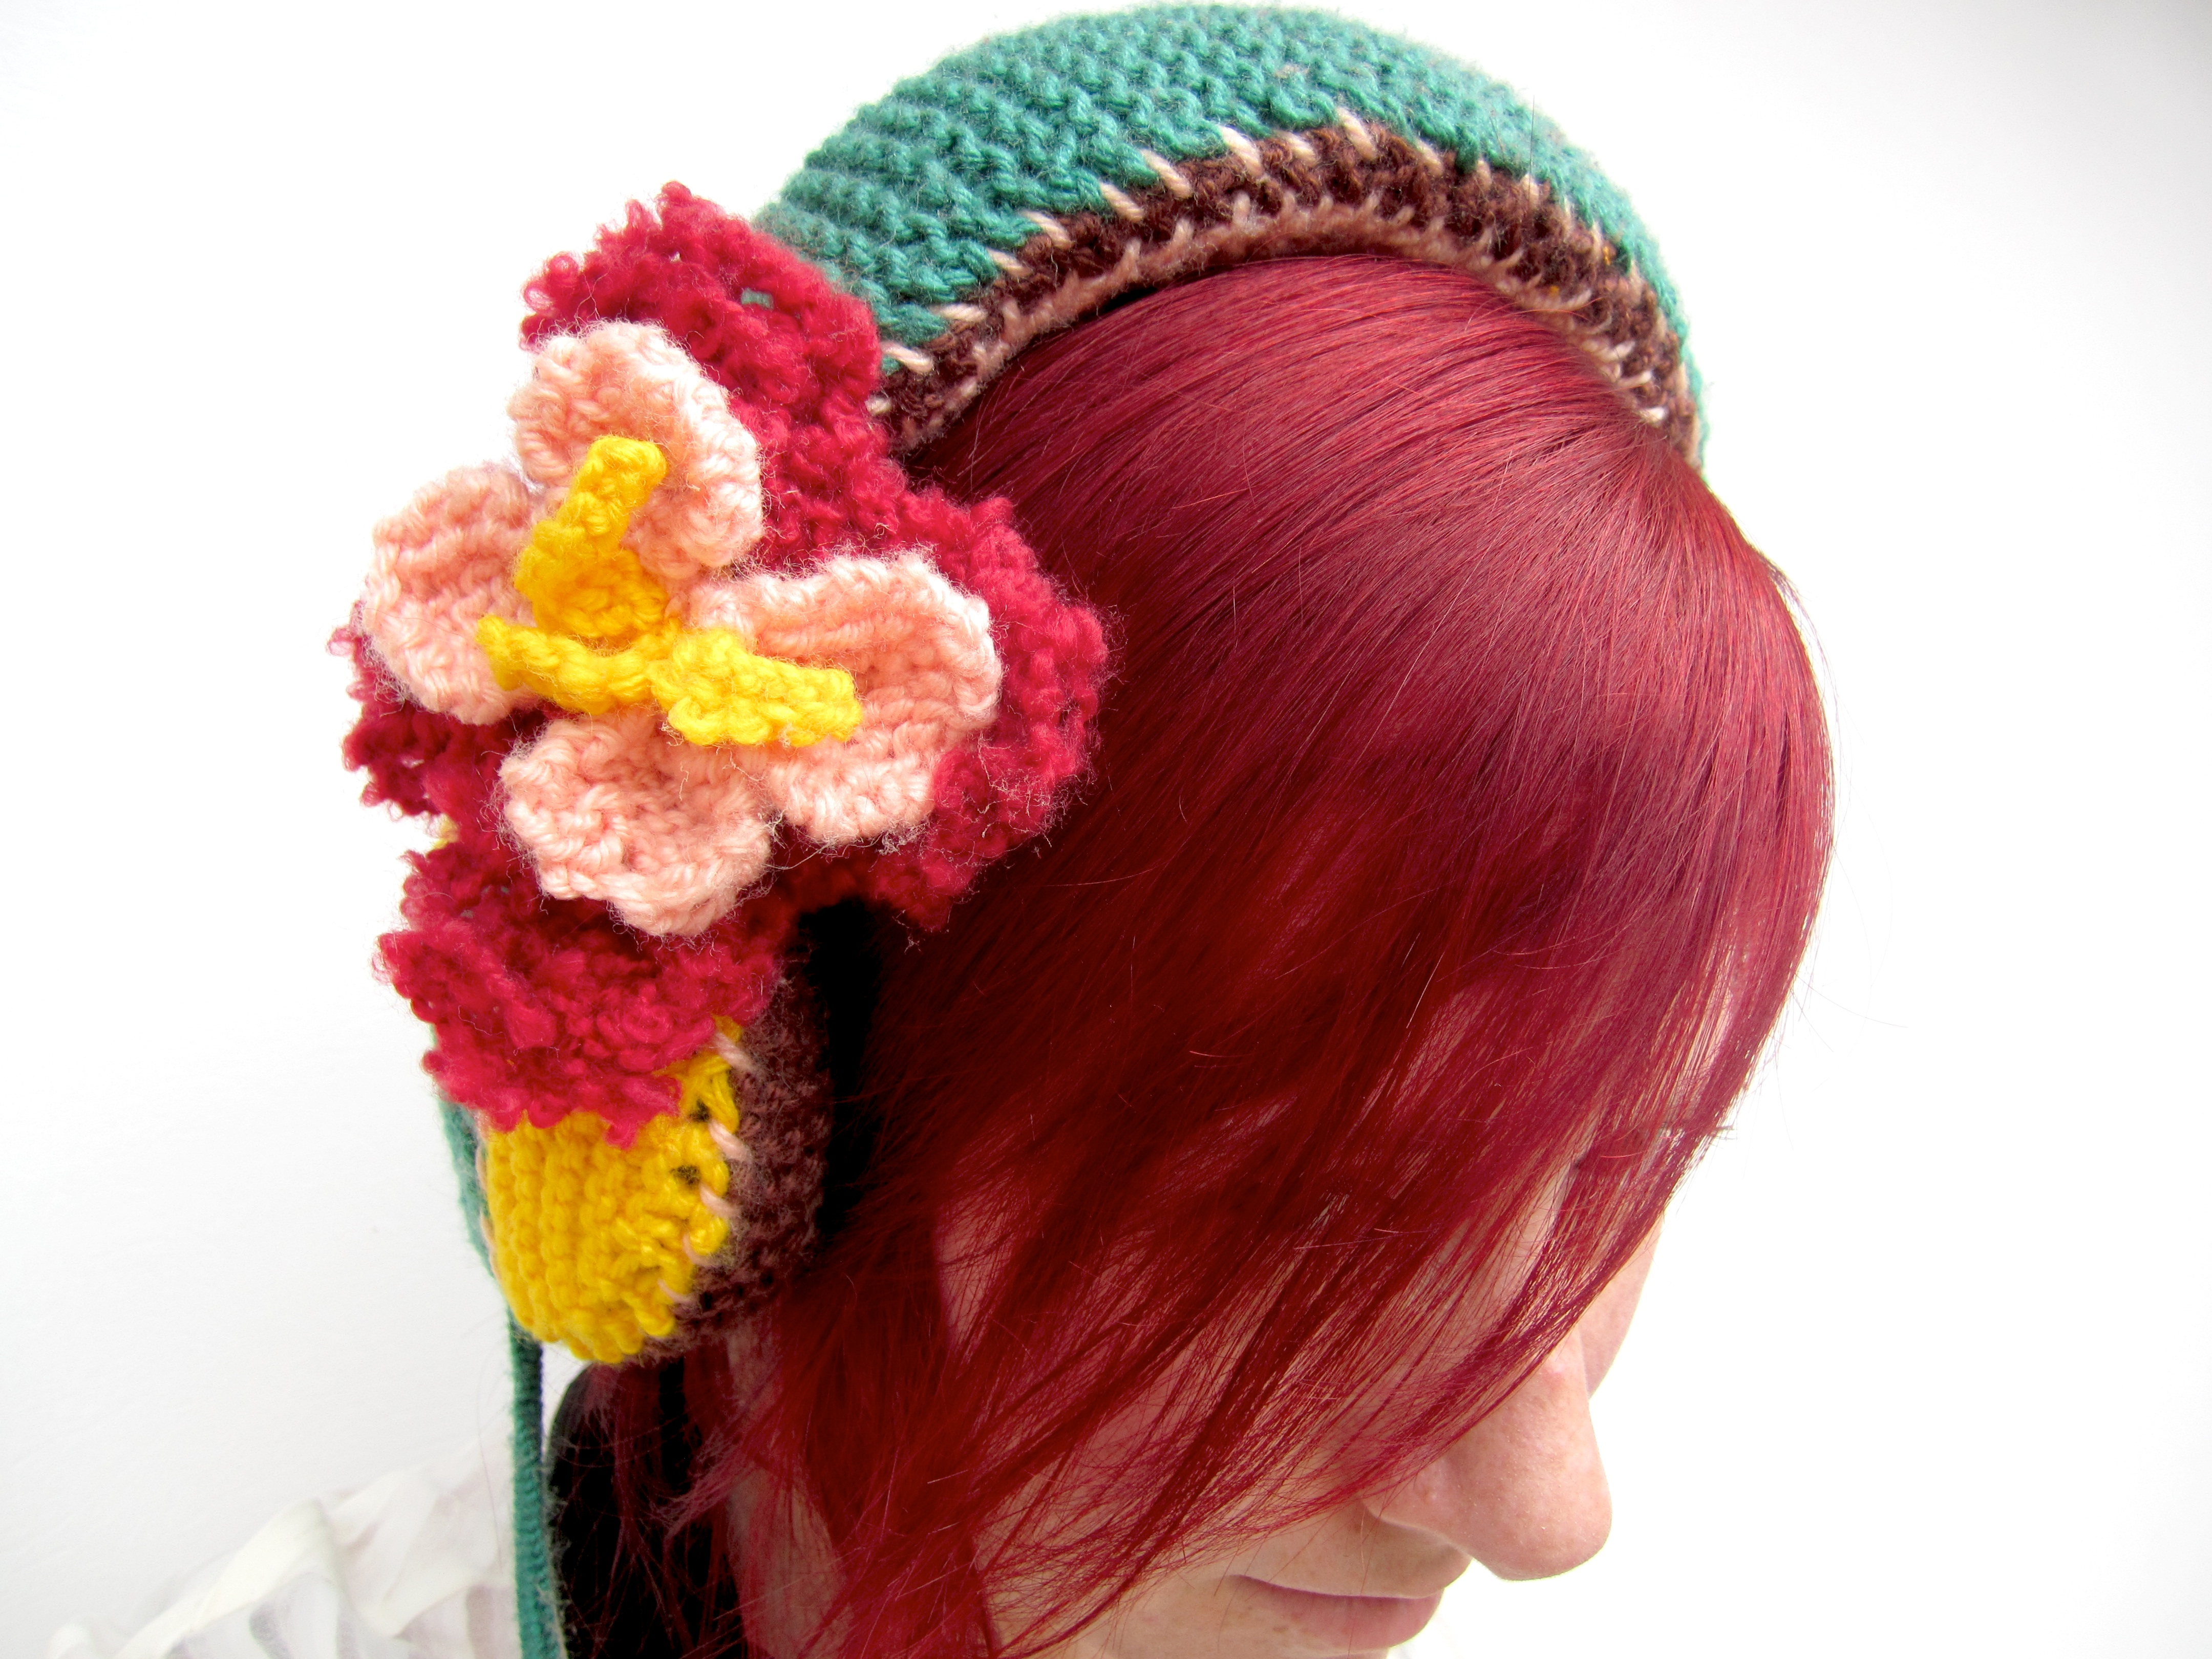 Knit Fashionable Headphones with Ease